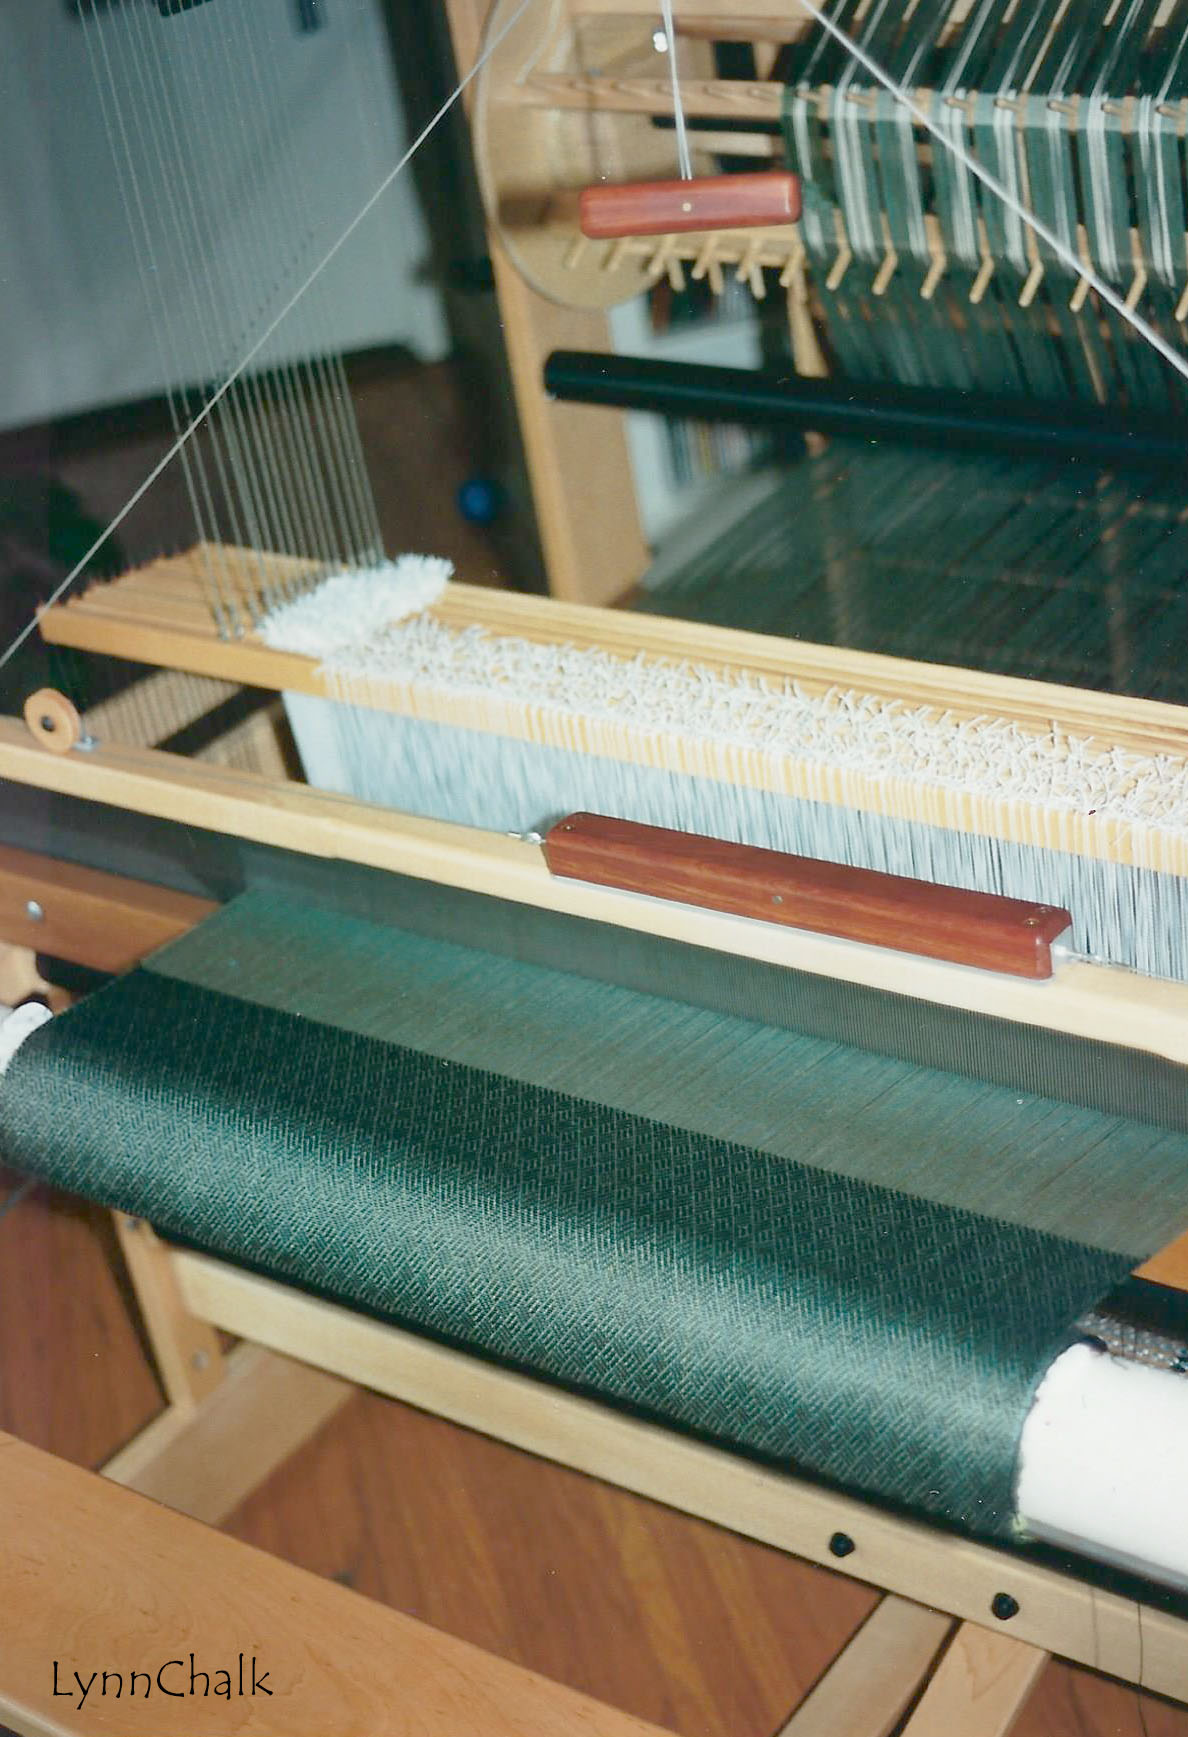 fabric-on-loom.jpg